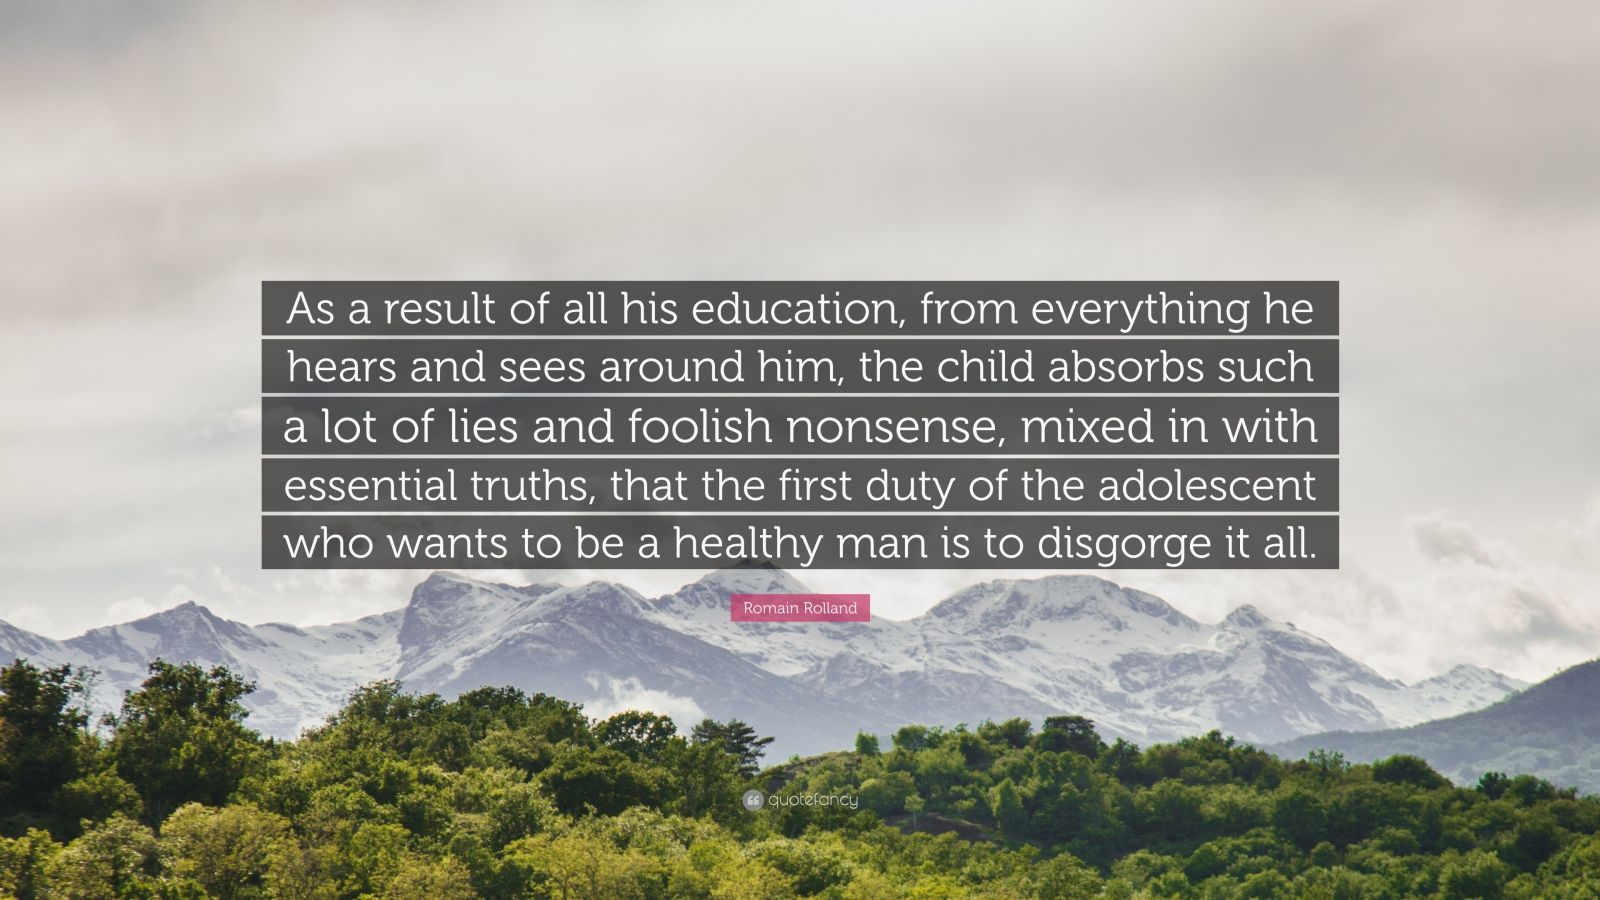 """Romain Rolland Quote: """"As a result of all his education, from everything he hears and sees around him, the child absorbs such a lot of lies and foolish nonsense, mixed in with essential truths, that the first duty of the adolescent who wants to be a healthy man is to disgorge it all."""""""